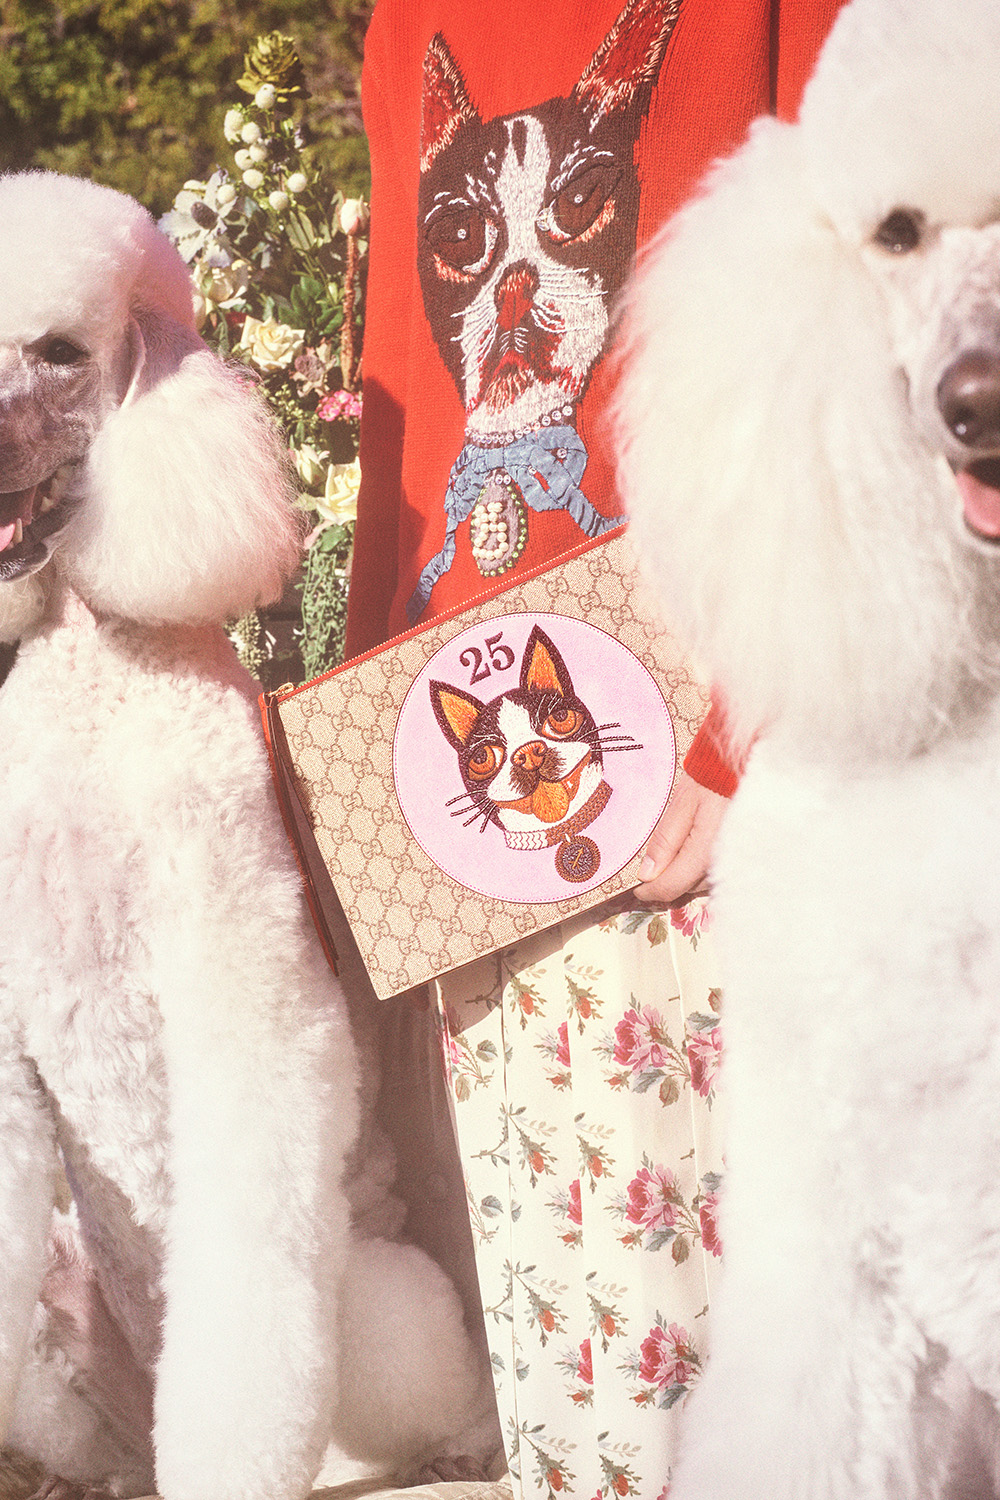 gucci-chinese-new-year-fashion-campaign-petra-collins-8.jpg